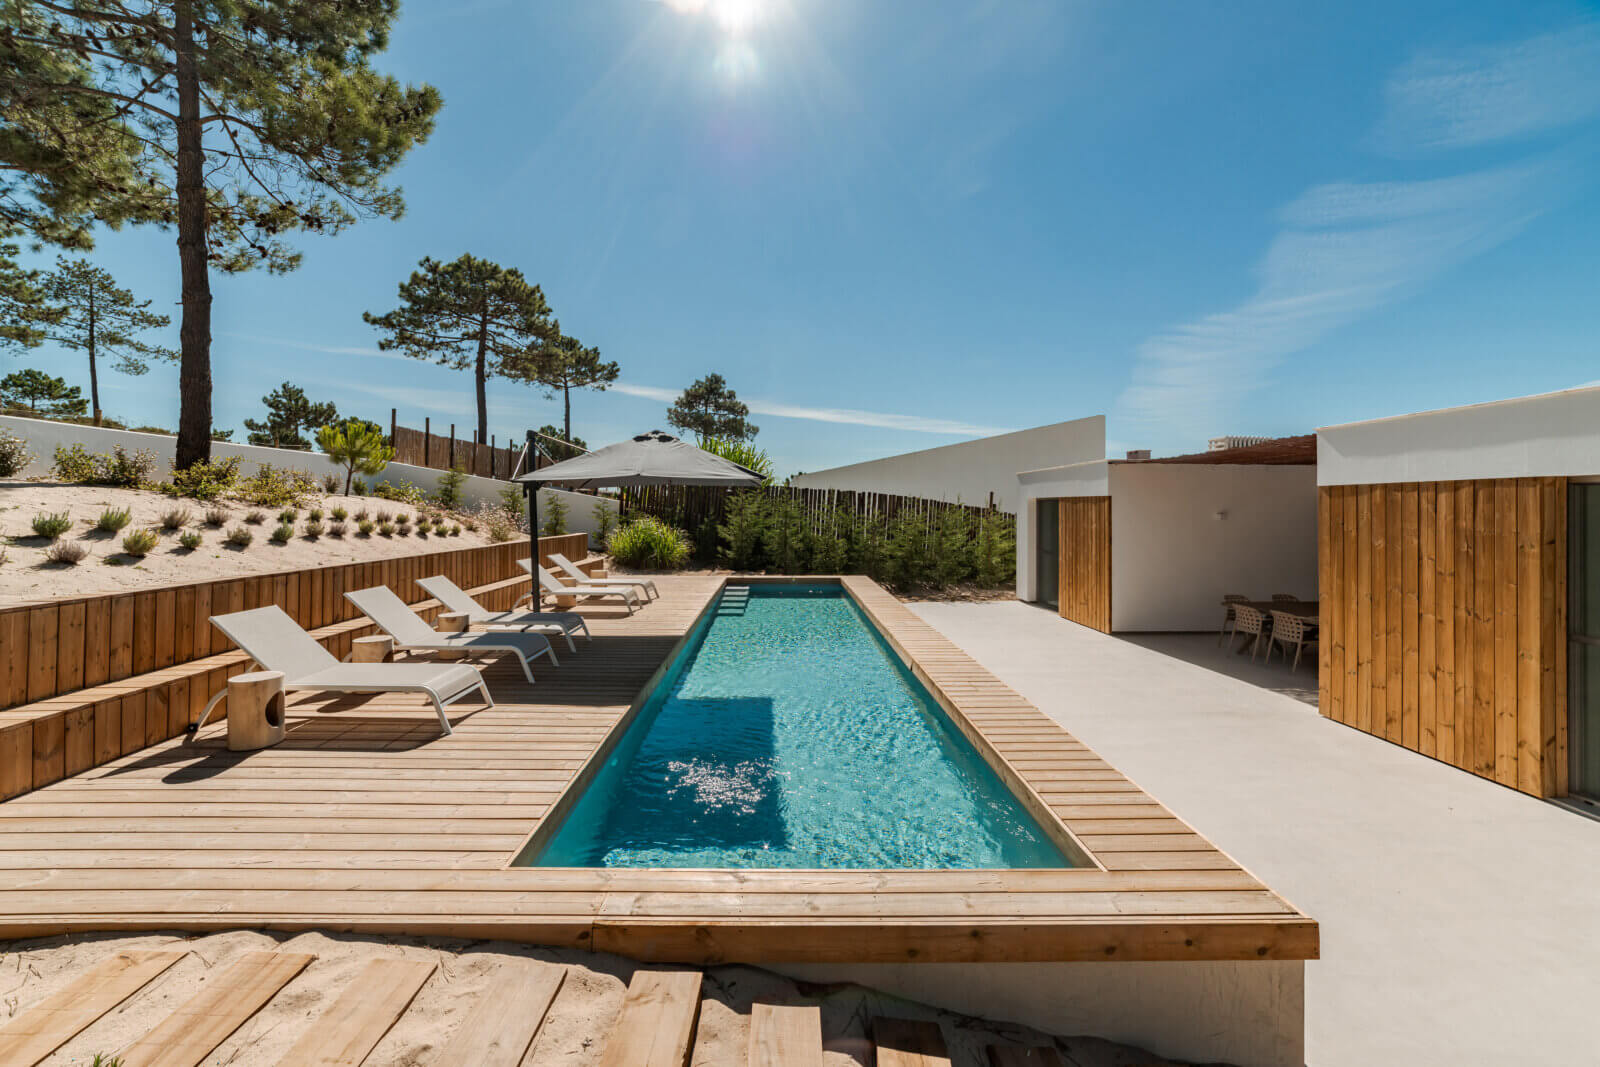 Lignex - Modern house with garden swimming pool and wooden deck